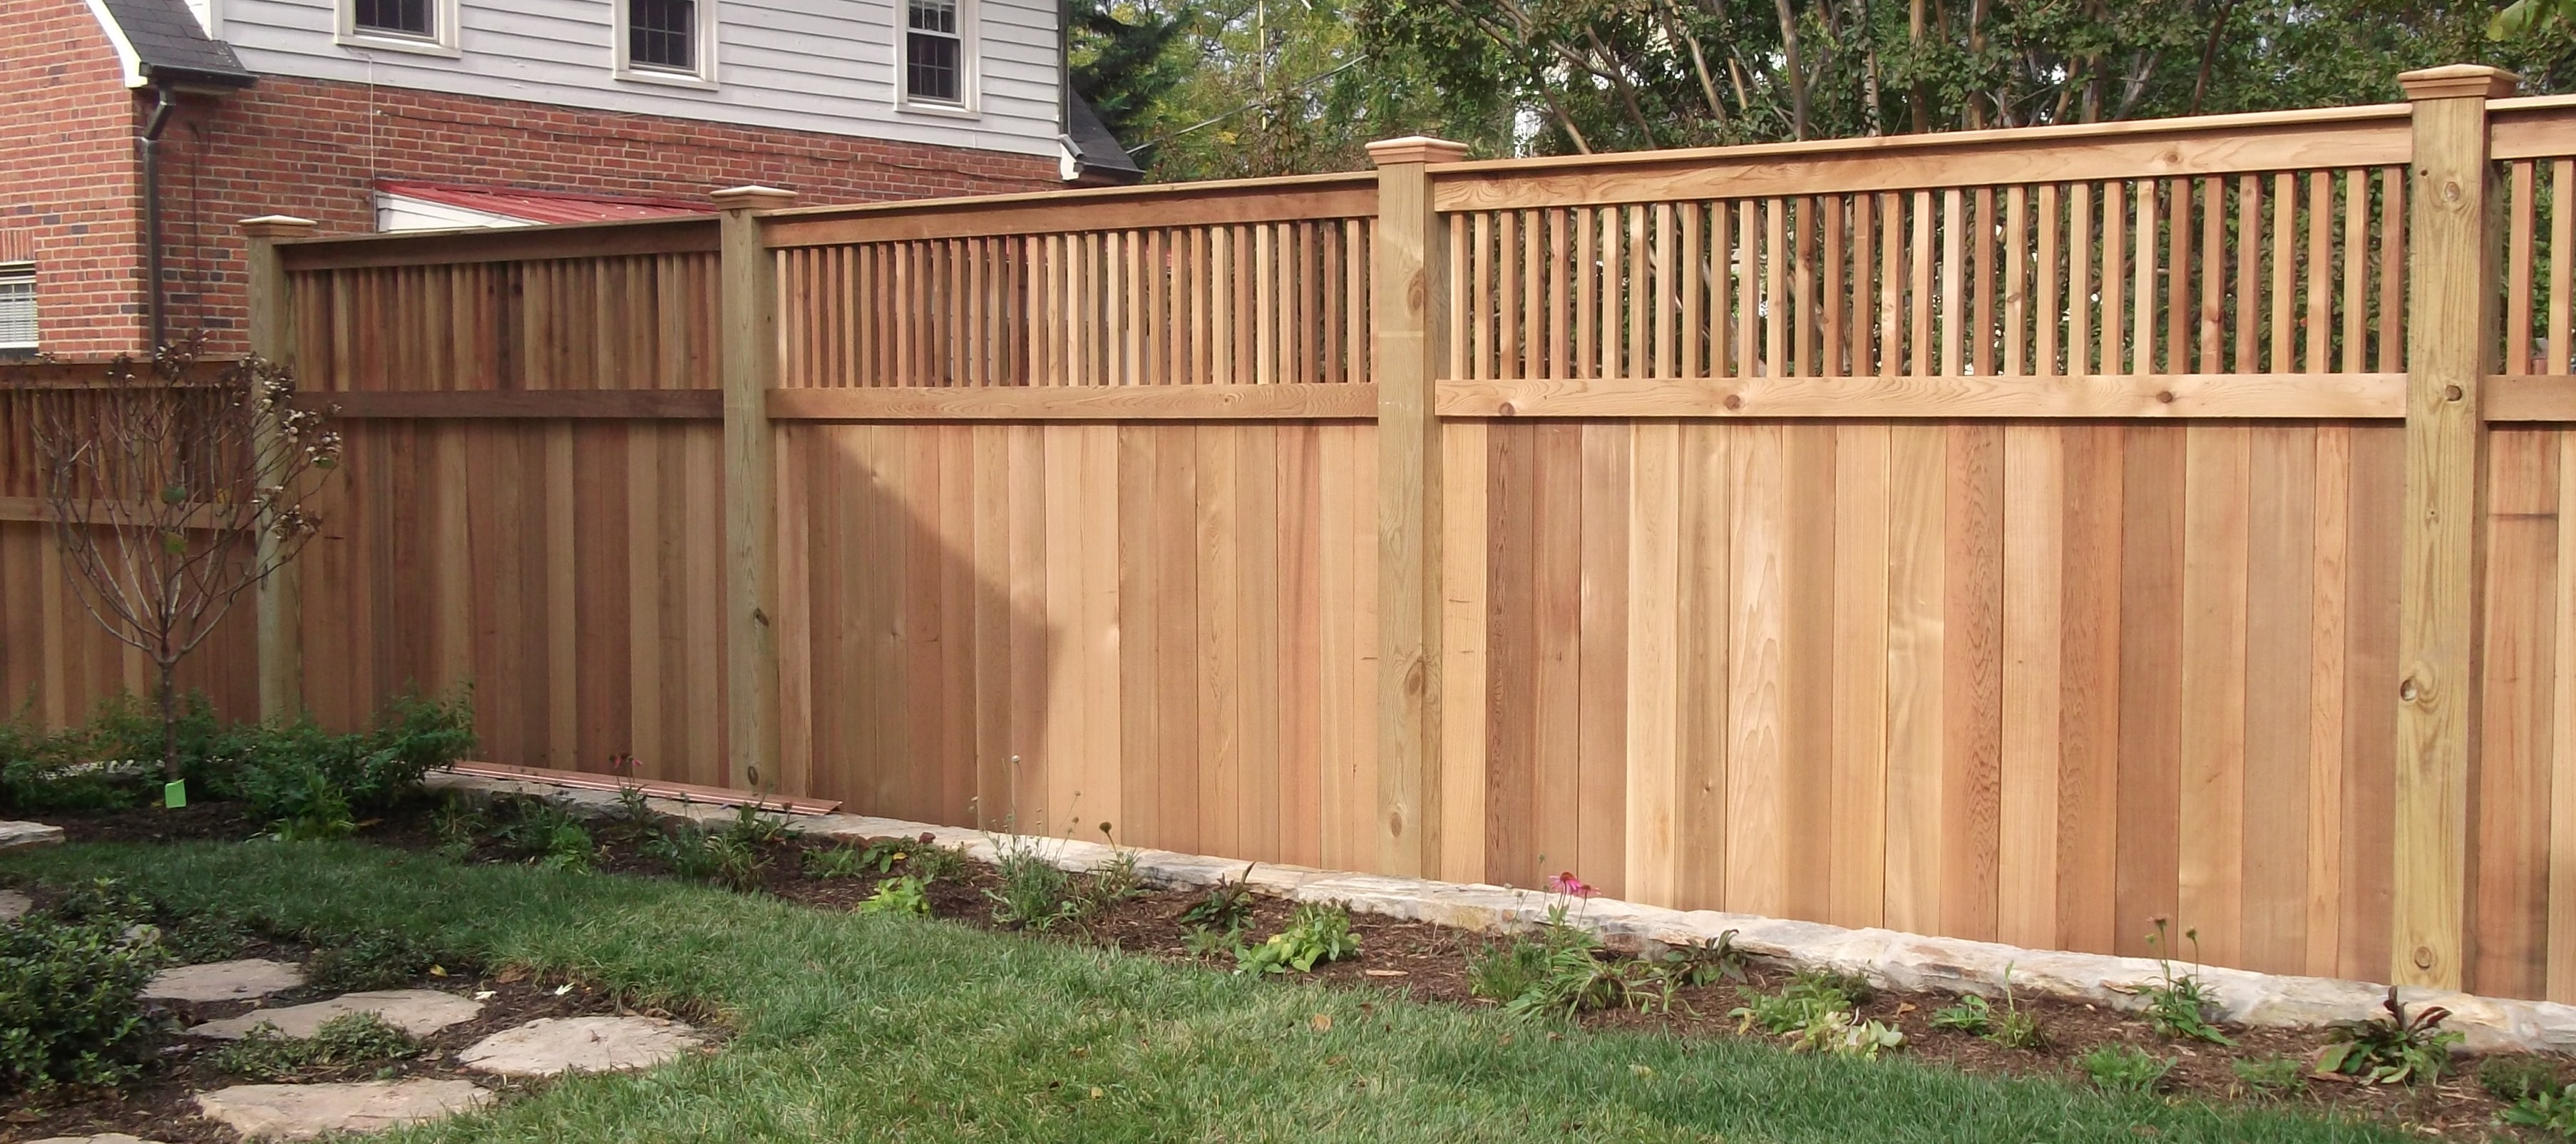 Backyard privacy fence ideas - large and beautiful photos ...